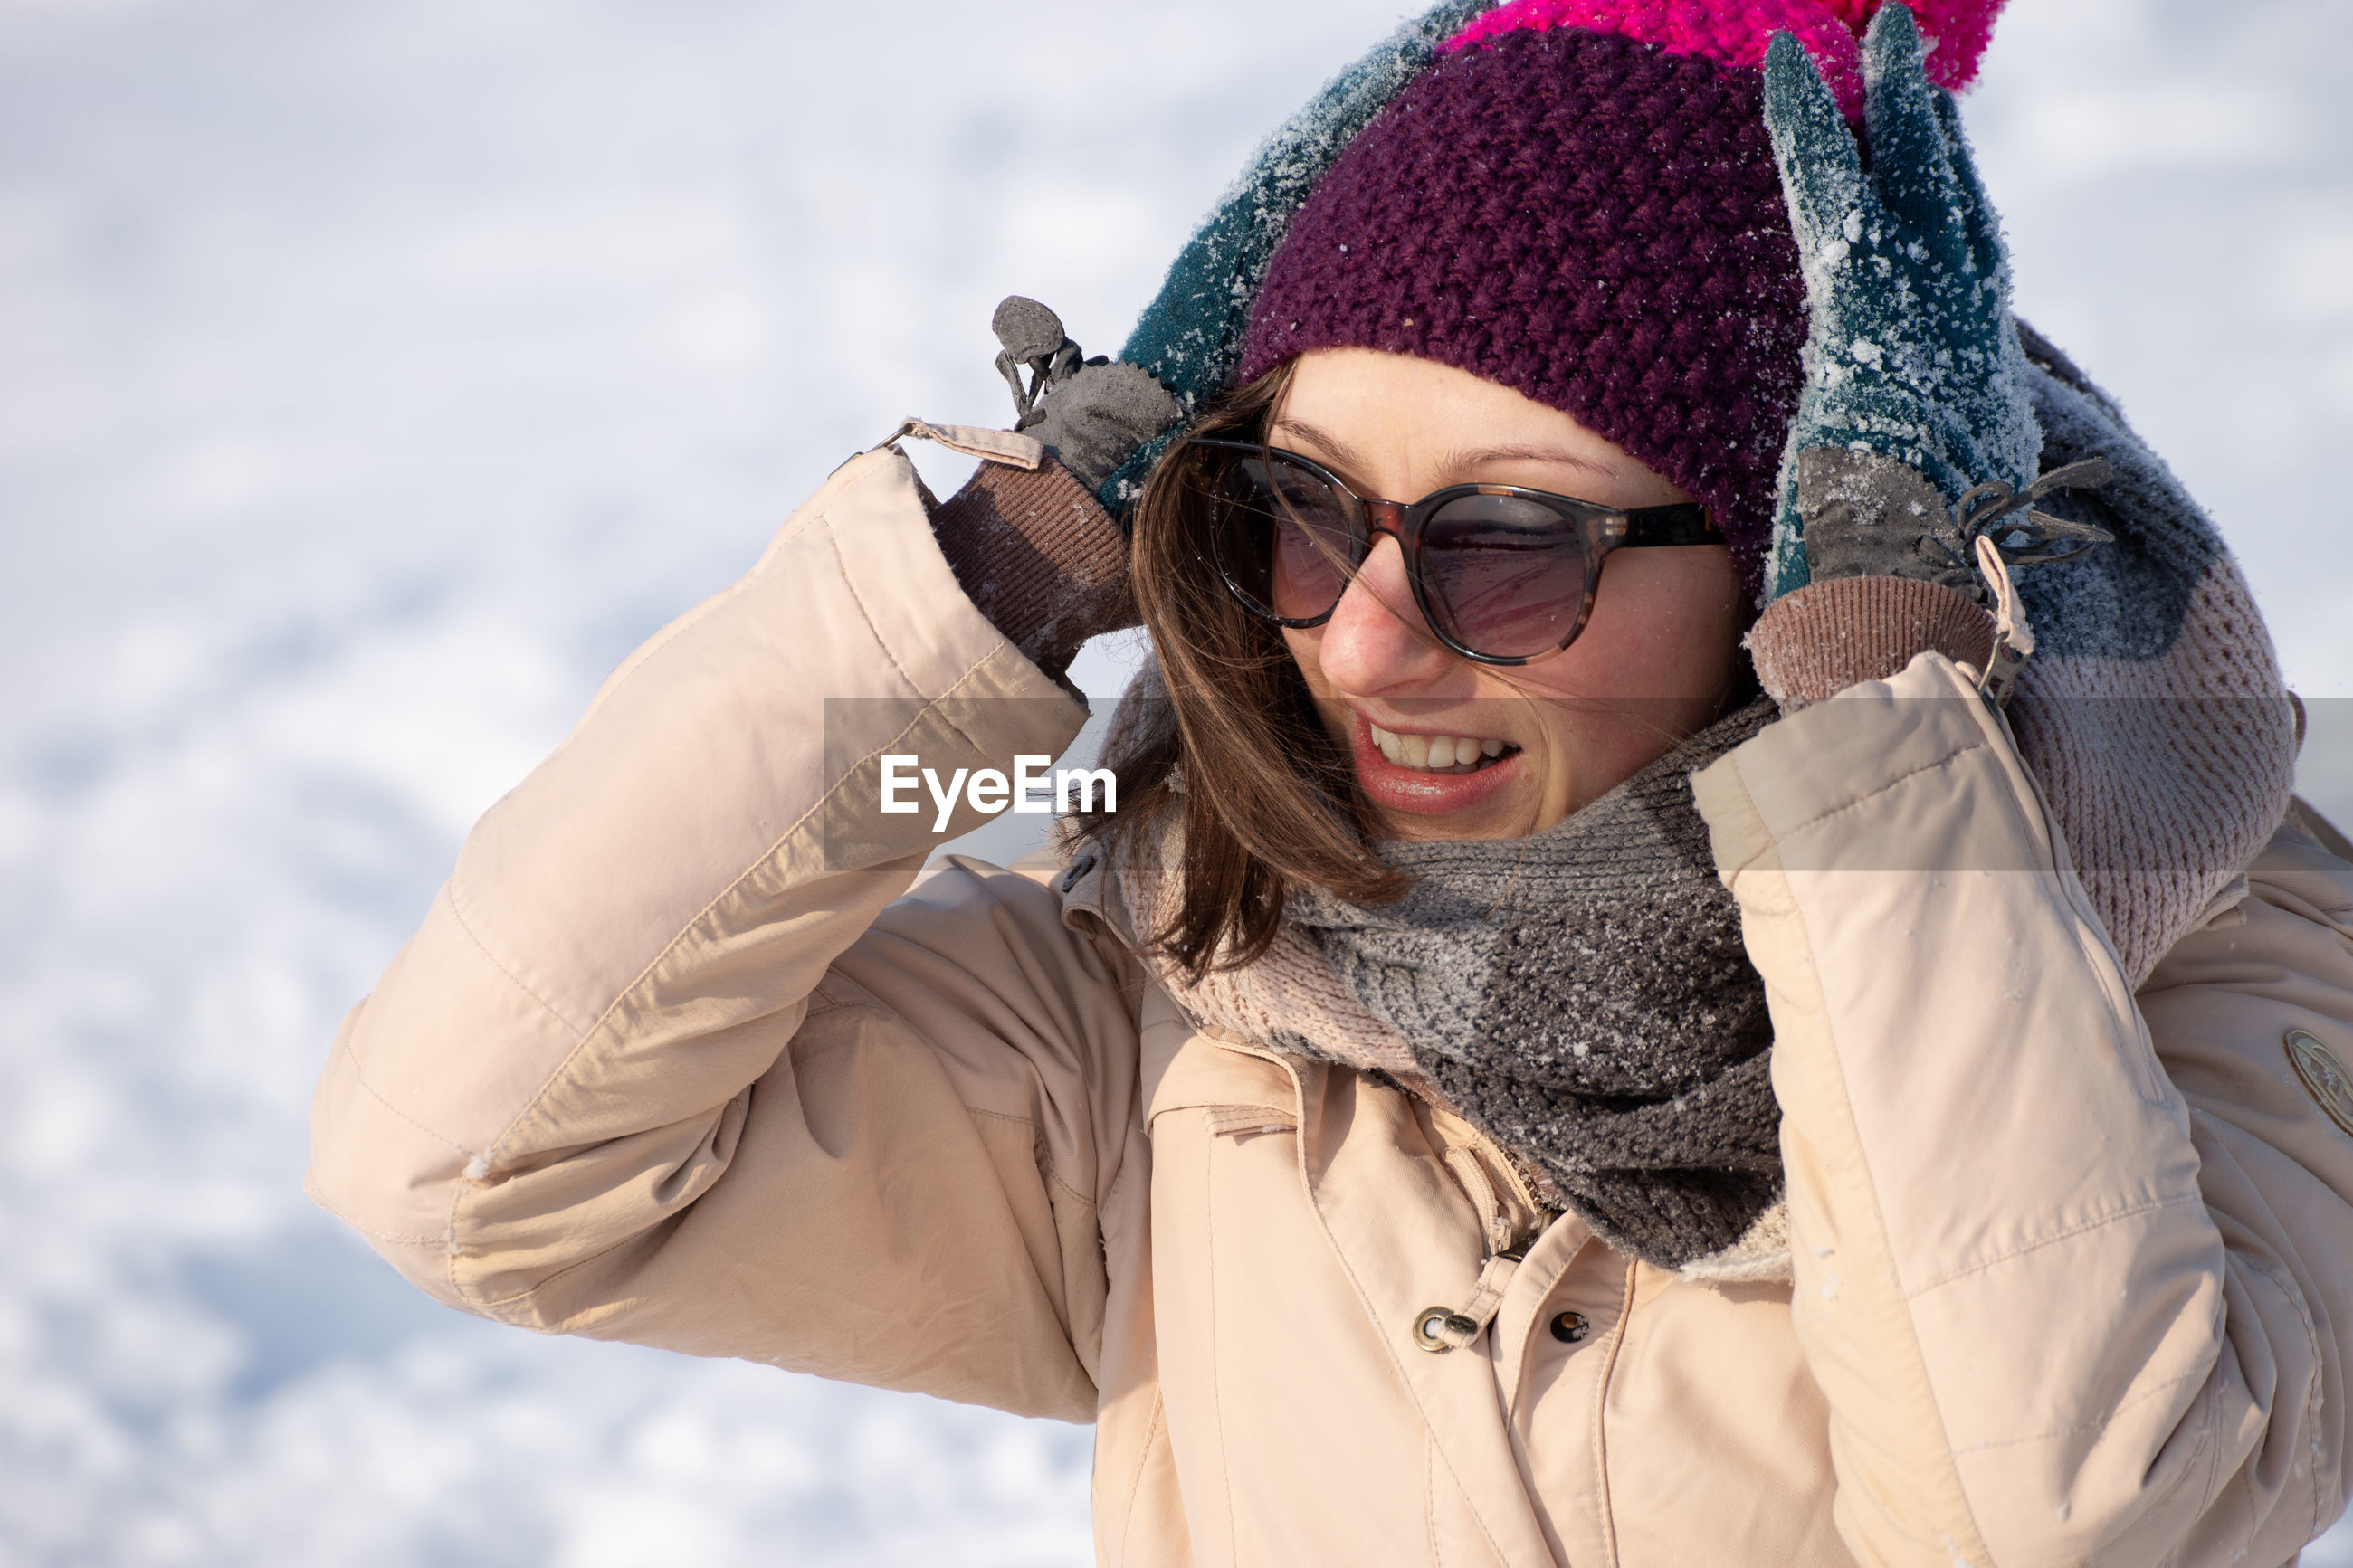 Smiling woman wearing sunglasses standing outdoors during winter